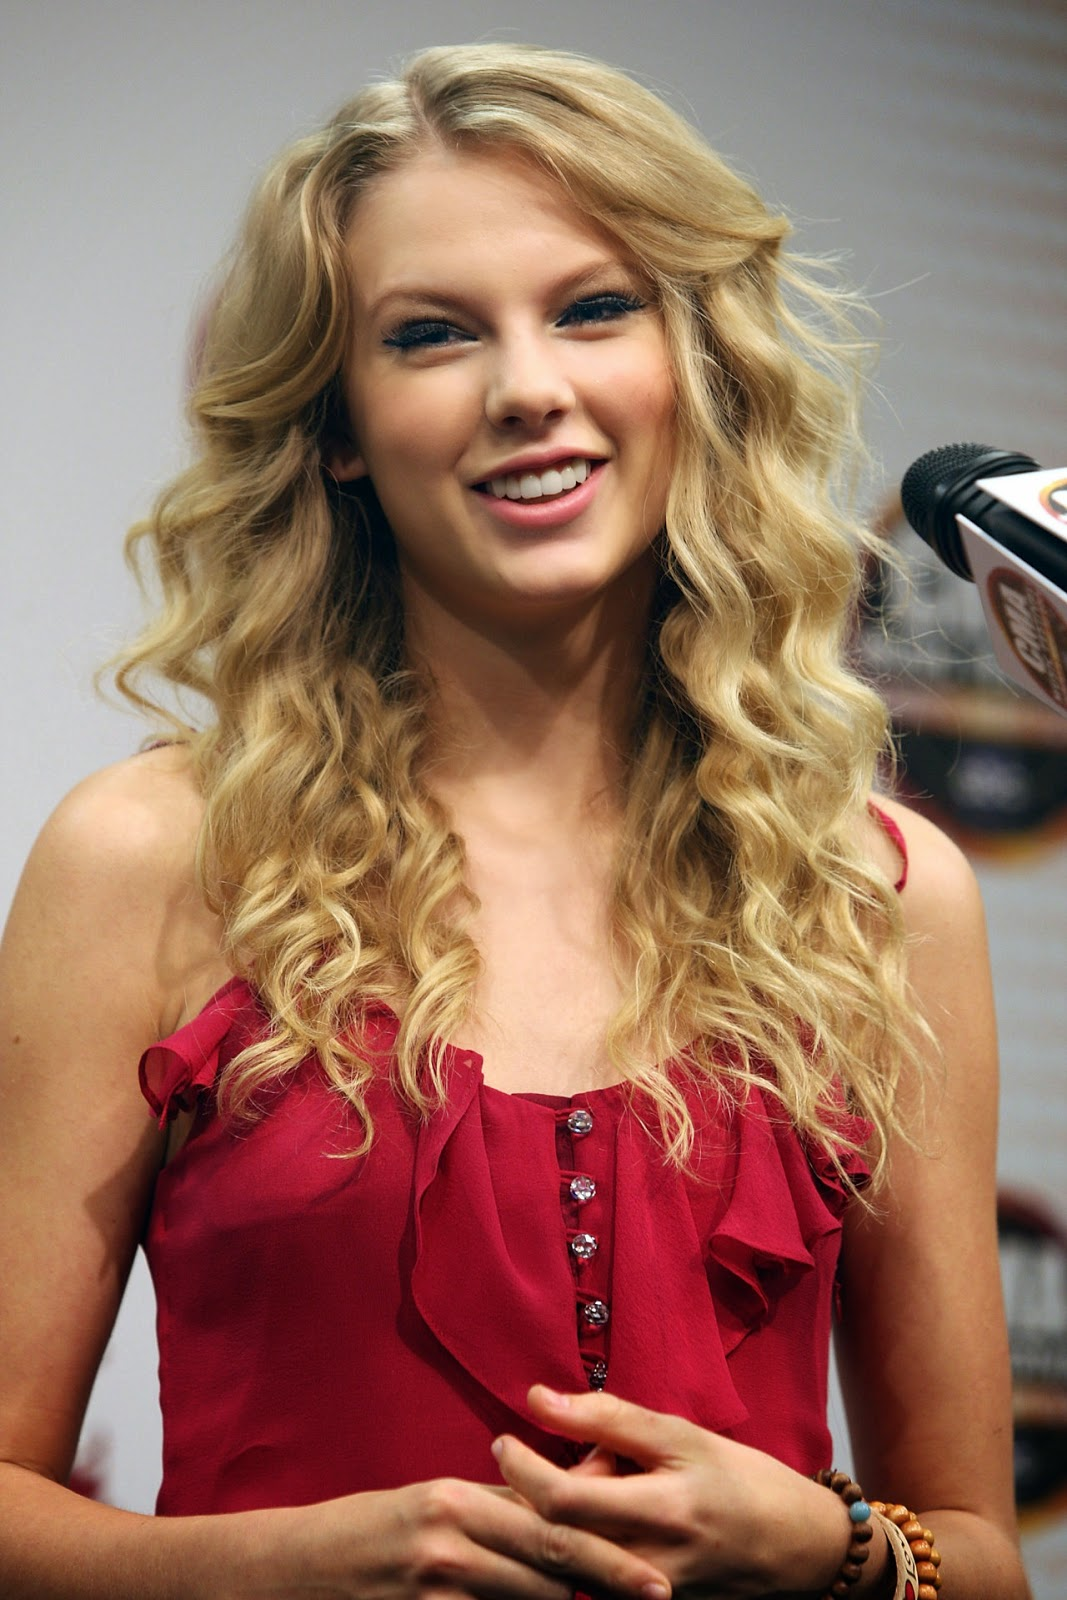 UNSEEN HOT SPICY: Taylor Swift Lovely Images